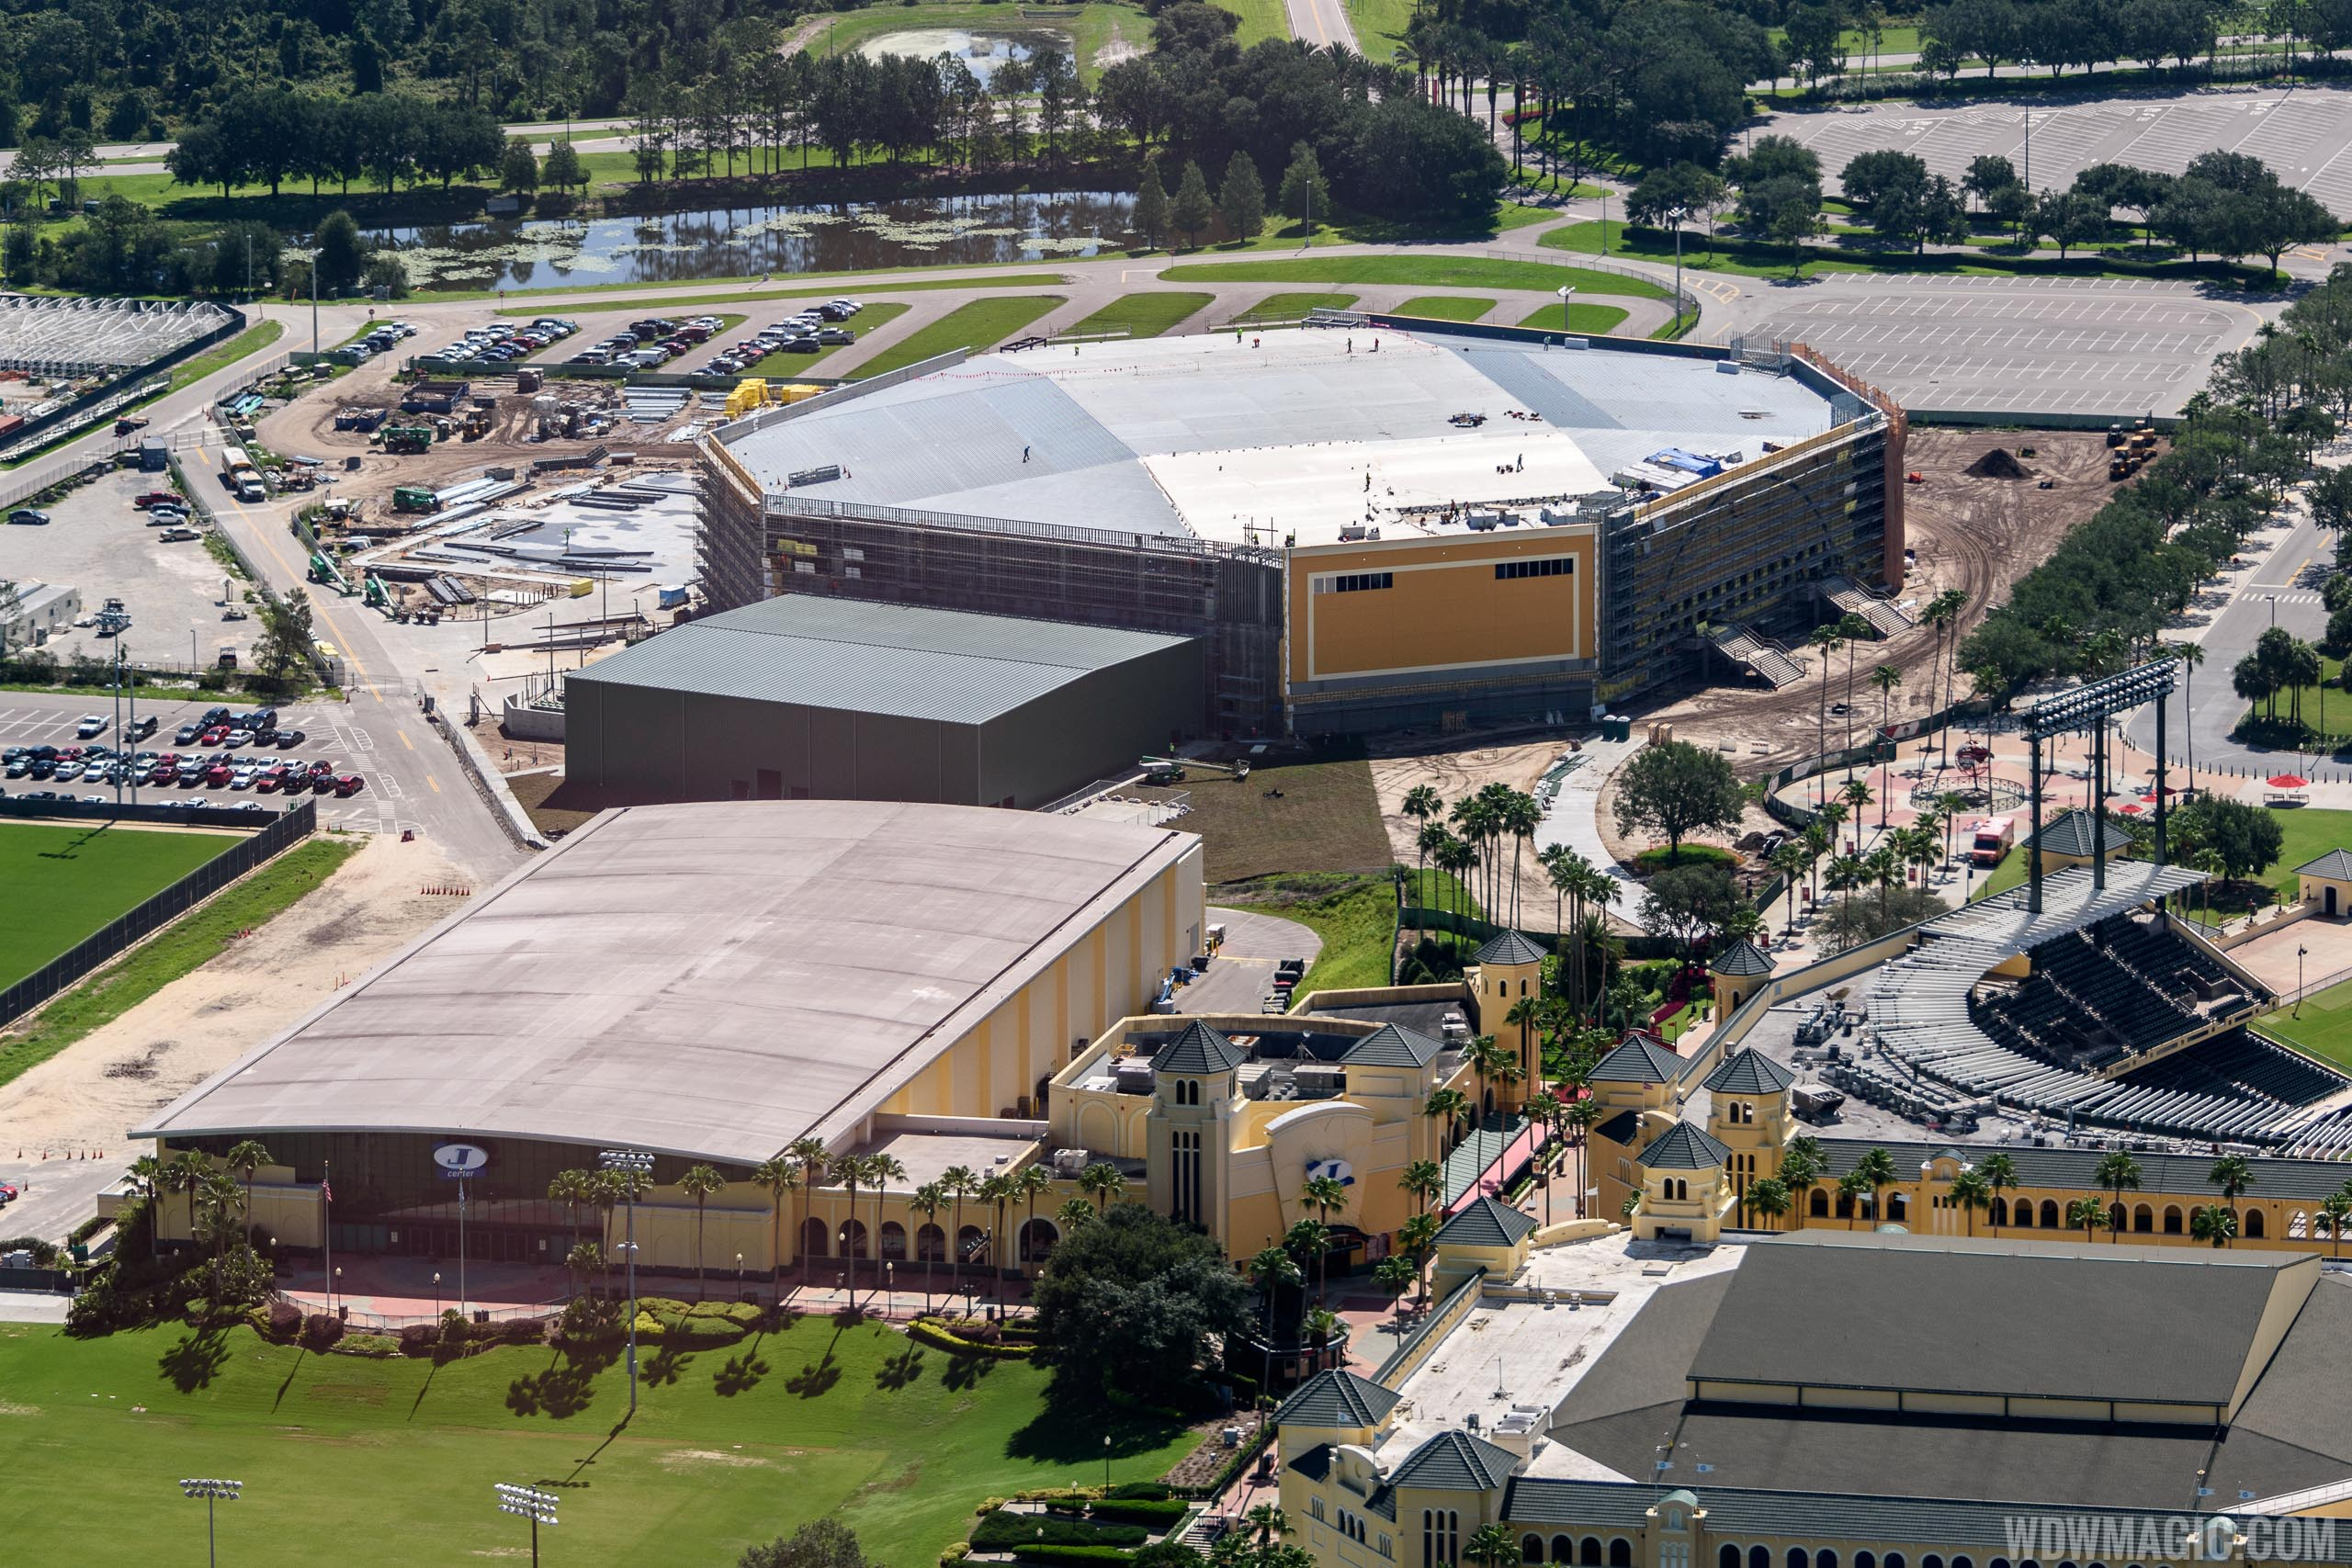 ESPN Wide World of Sports cheer and dance venue construction from the air